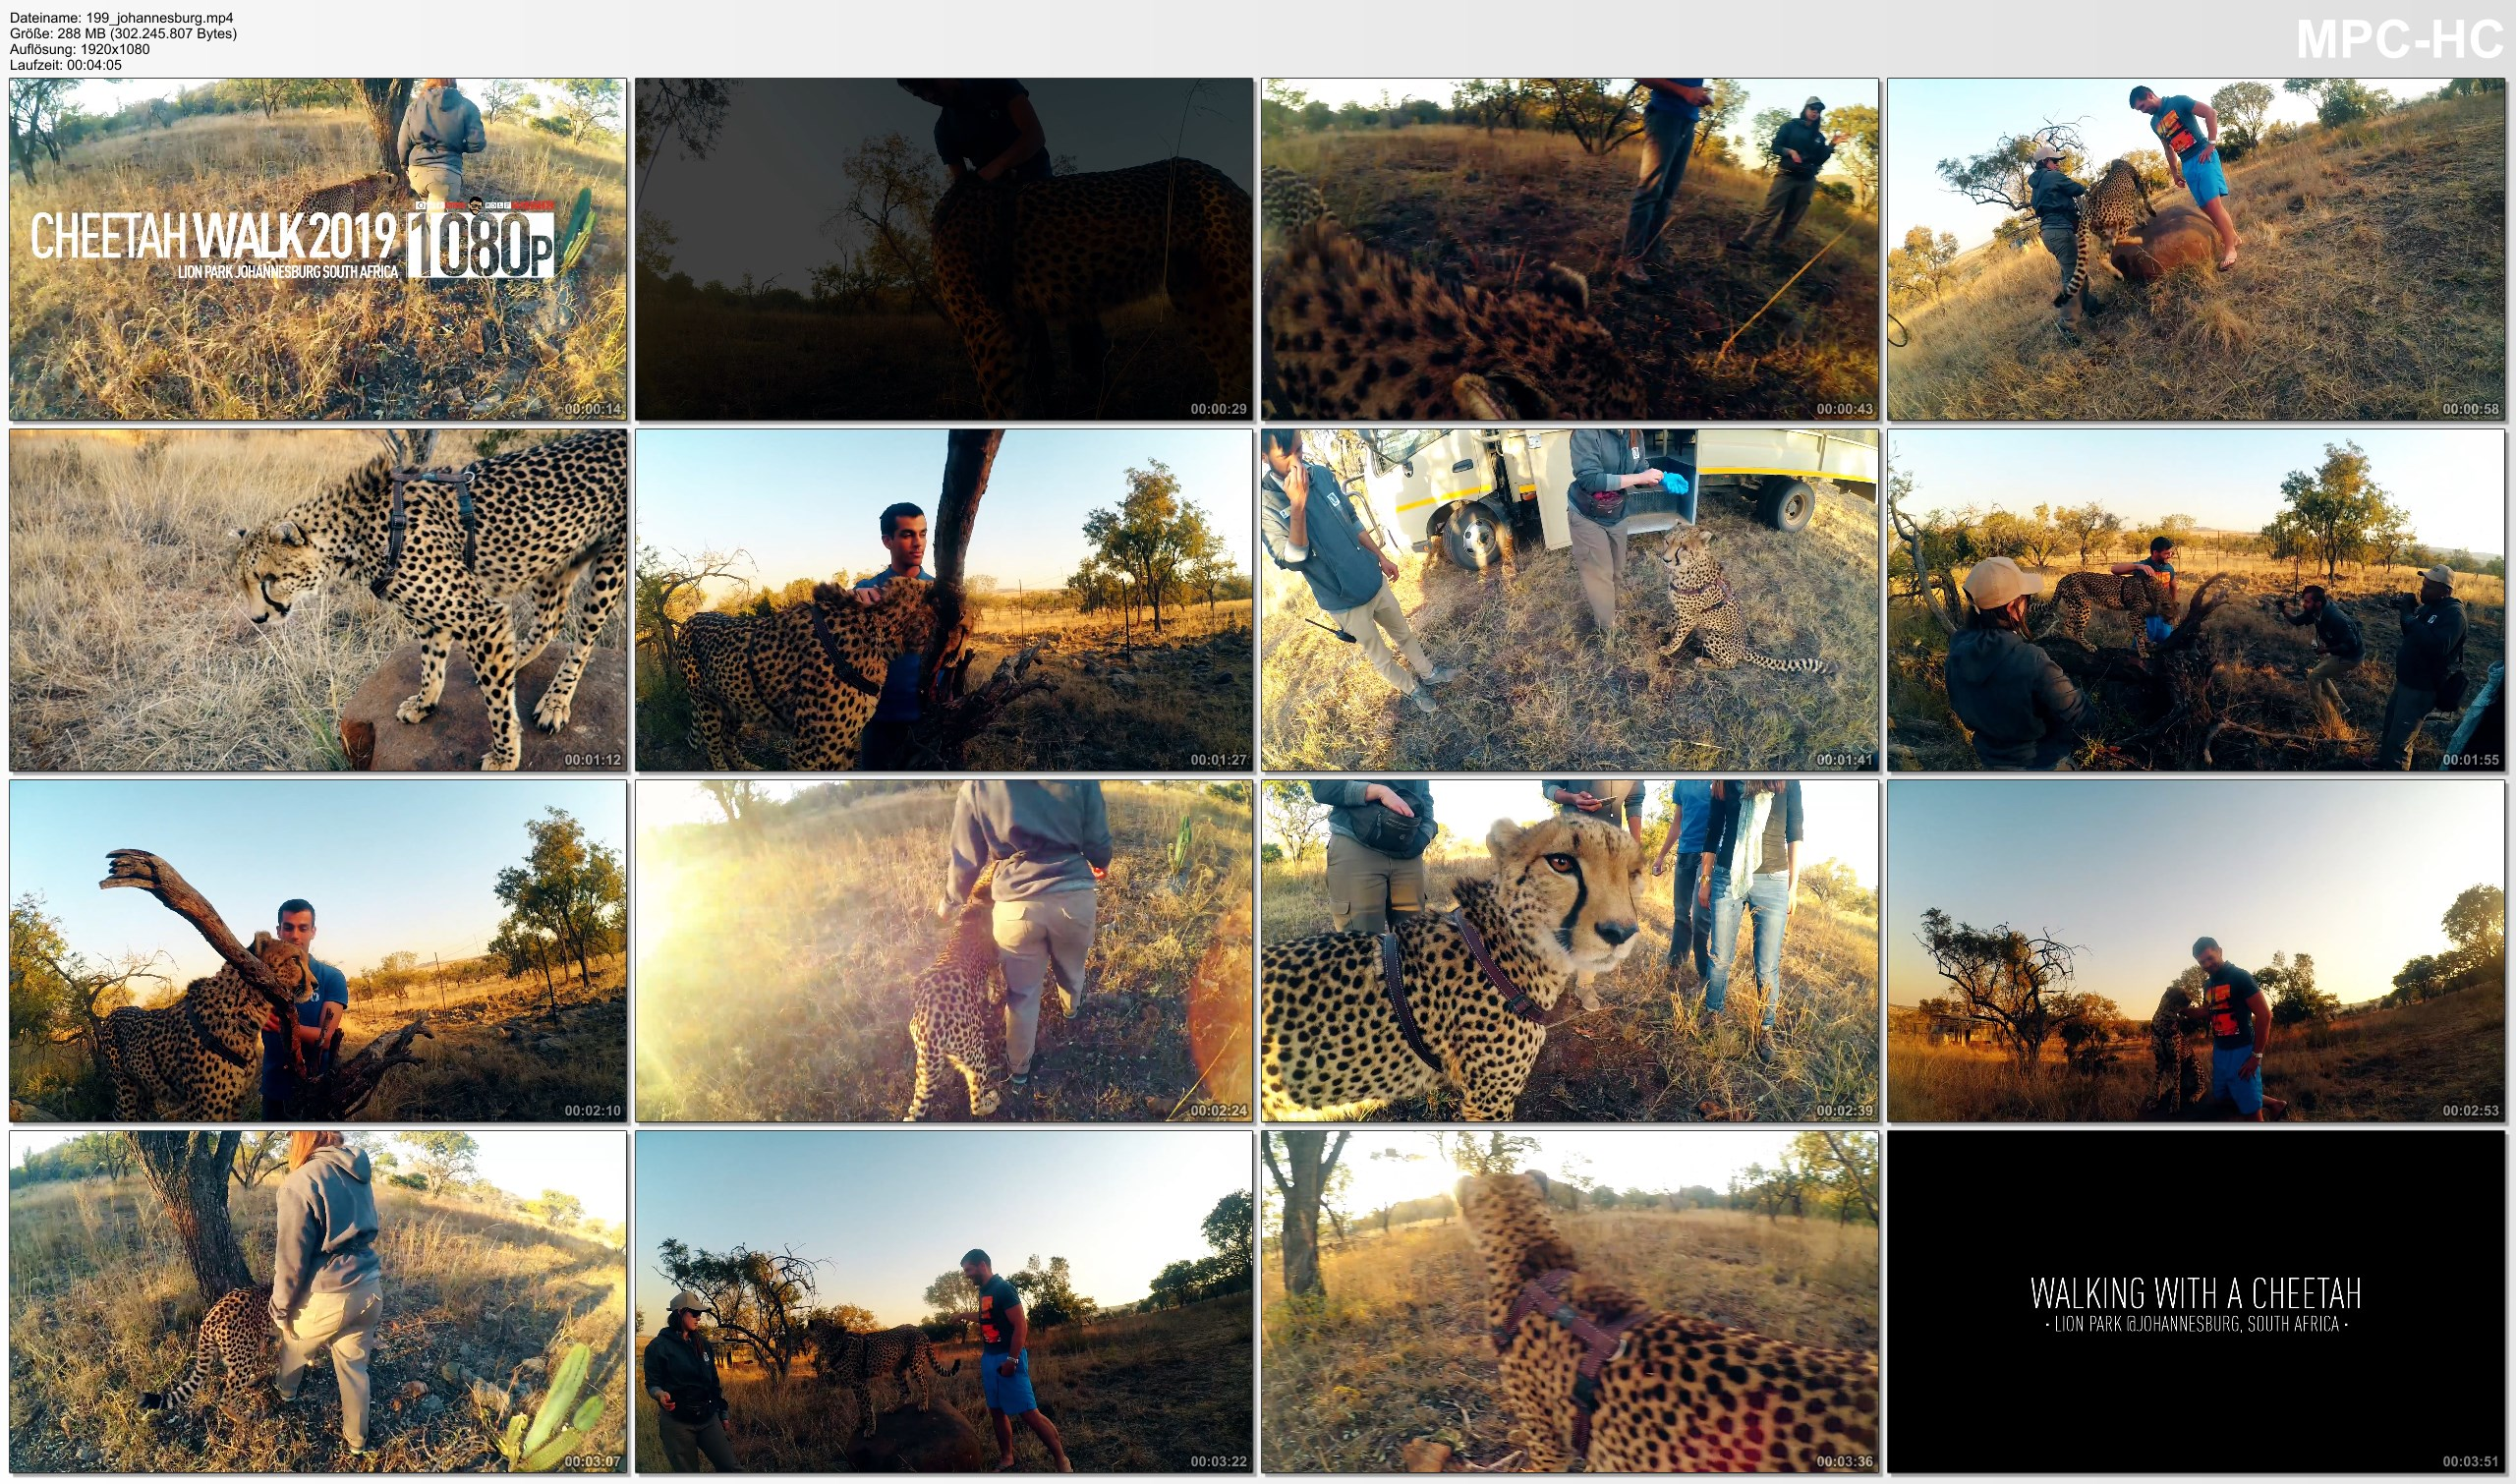 Pictures from Video 【1080p】Footage | Walking with a CHEETAH 2019 ..:: Lion & Safari Park @Johannesburg, South Africa